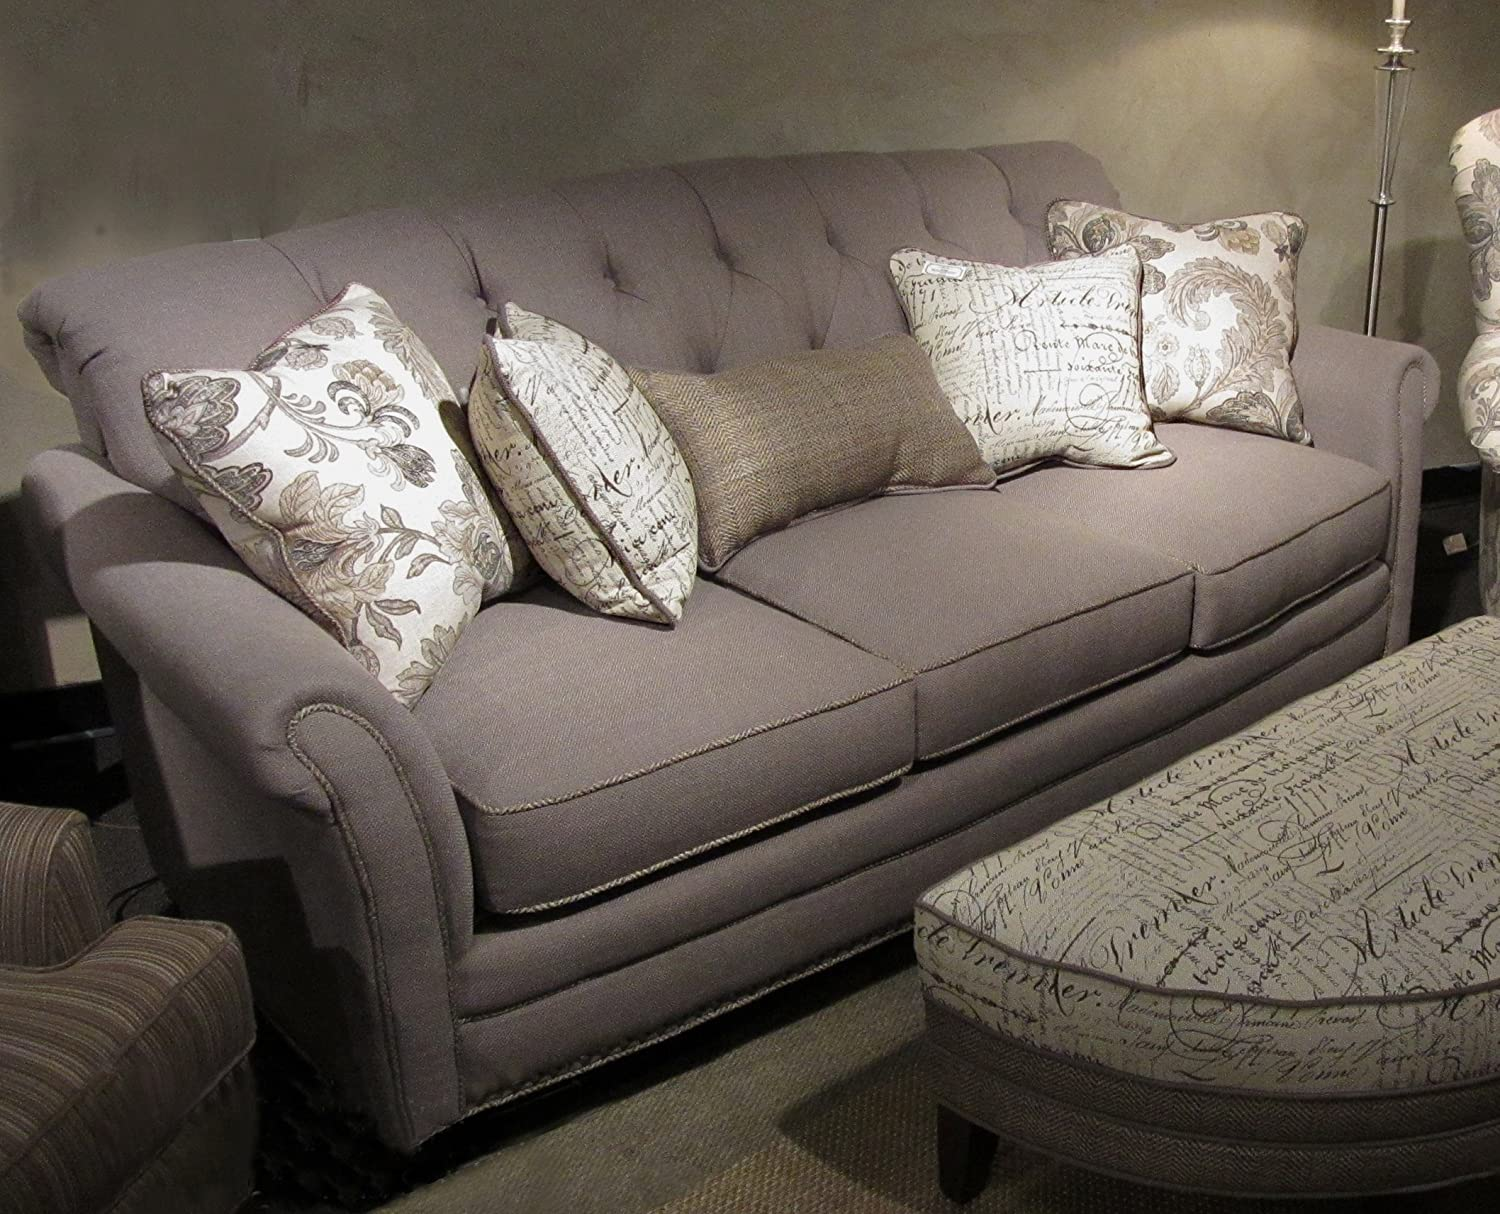 Chelsea Home Furniture Port Edwards Sofa - Lindy Chinchilla with 2 18 accent Pillows - 2 16 Font Linen accent Pillows